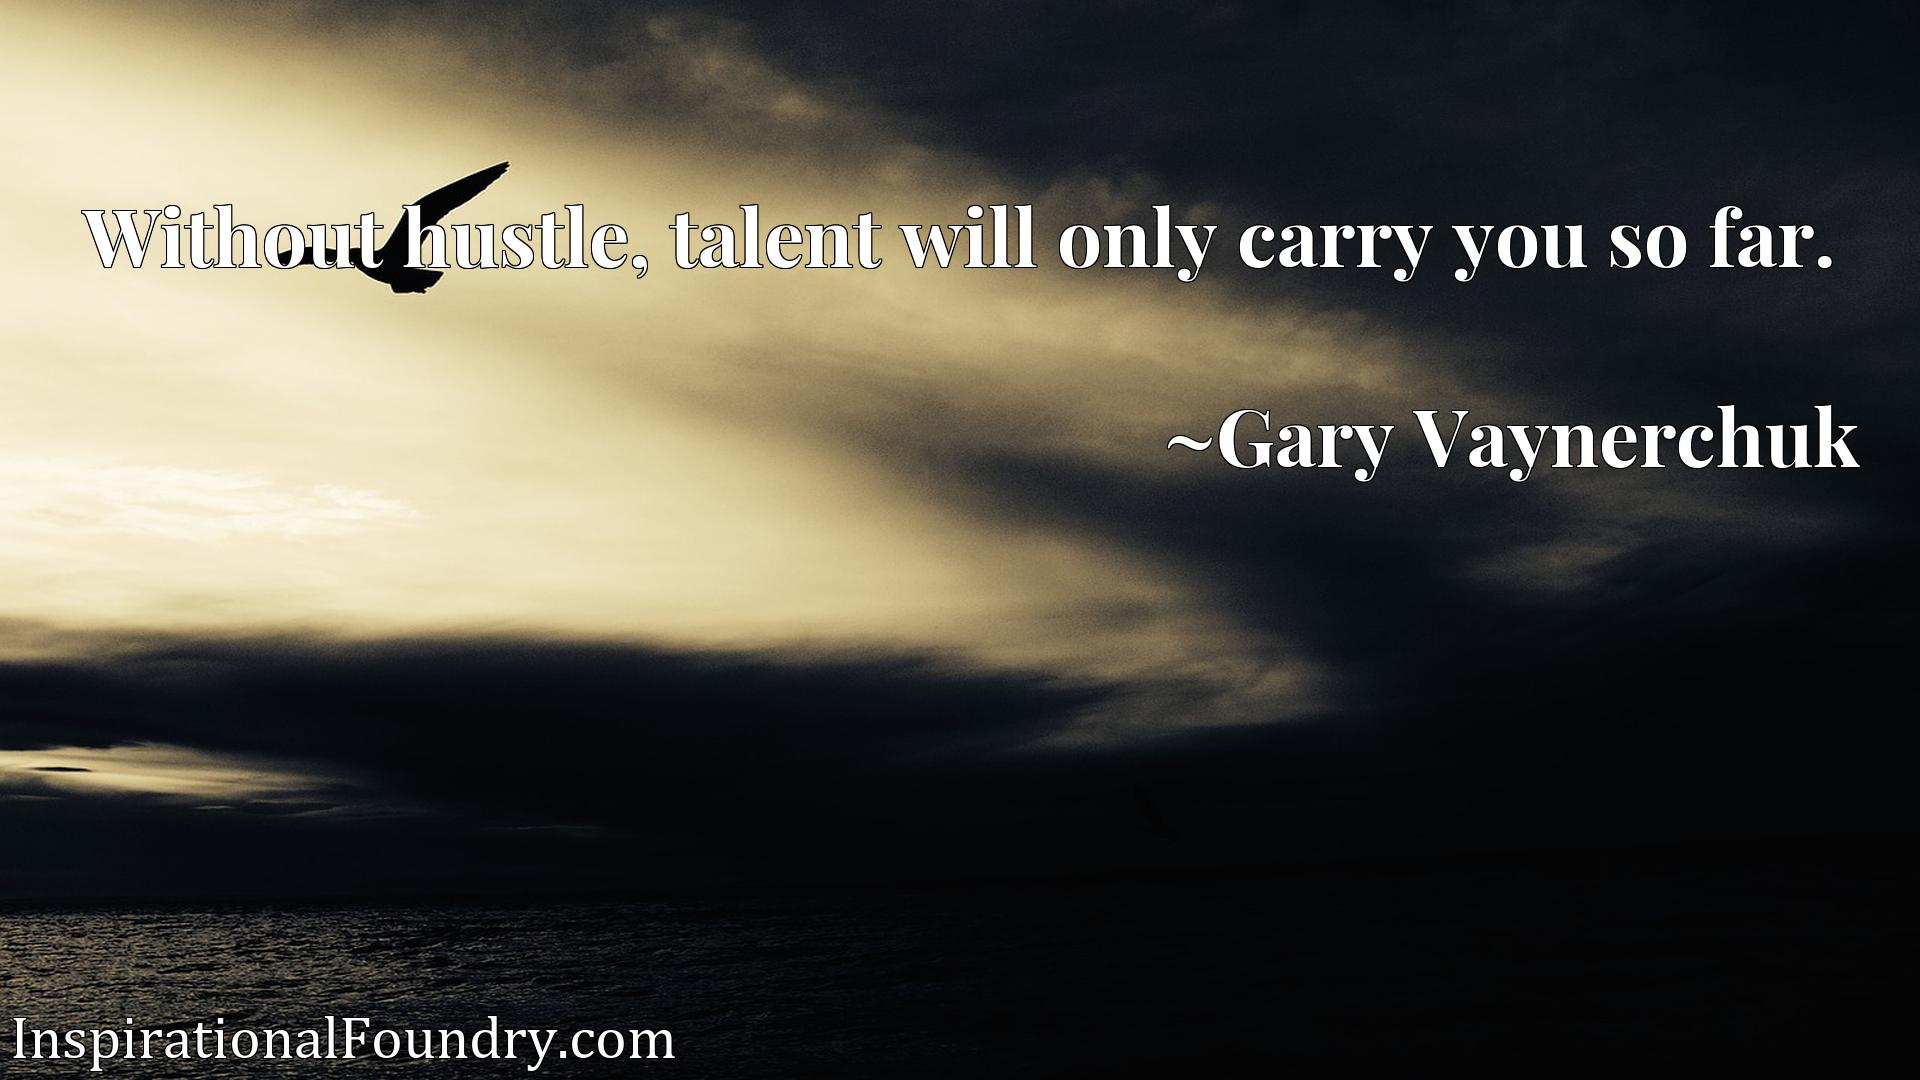 Without hustle, talent will only carry you so far.